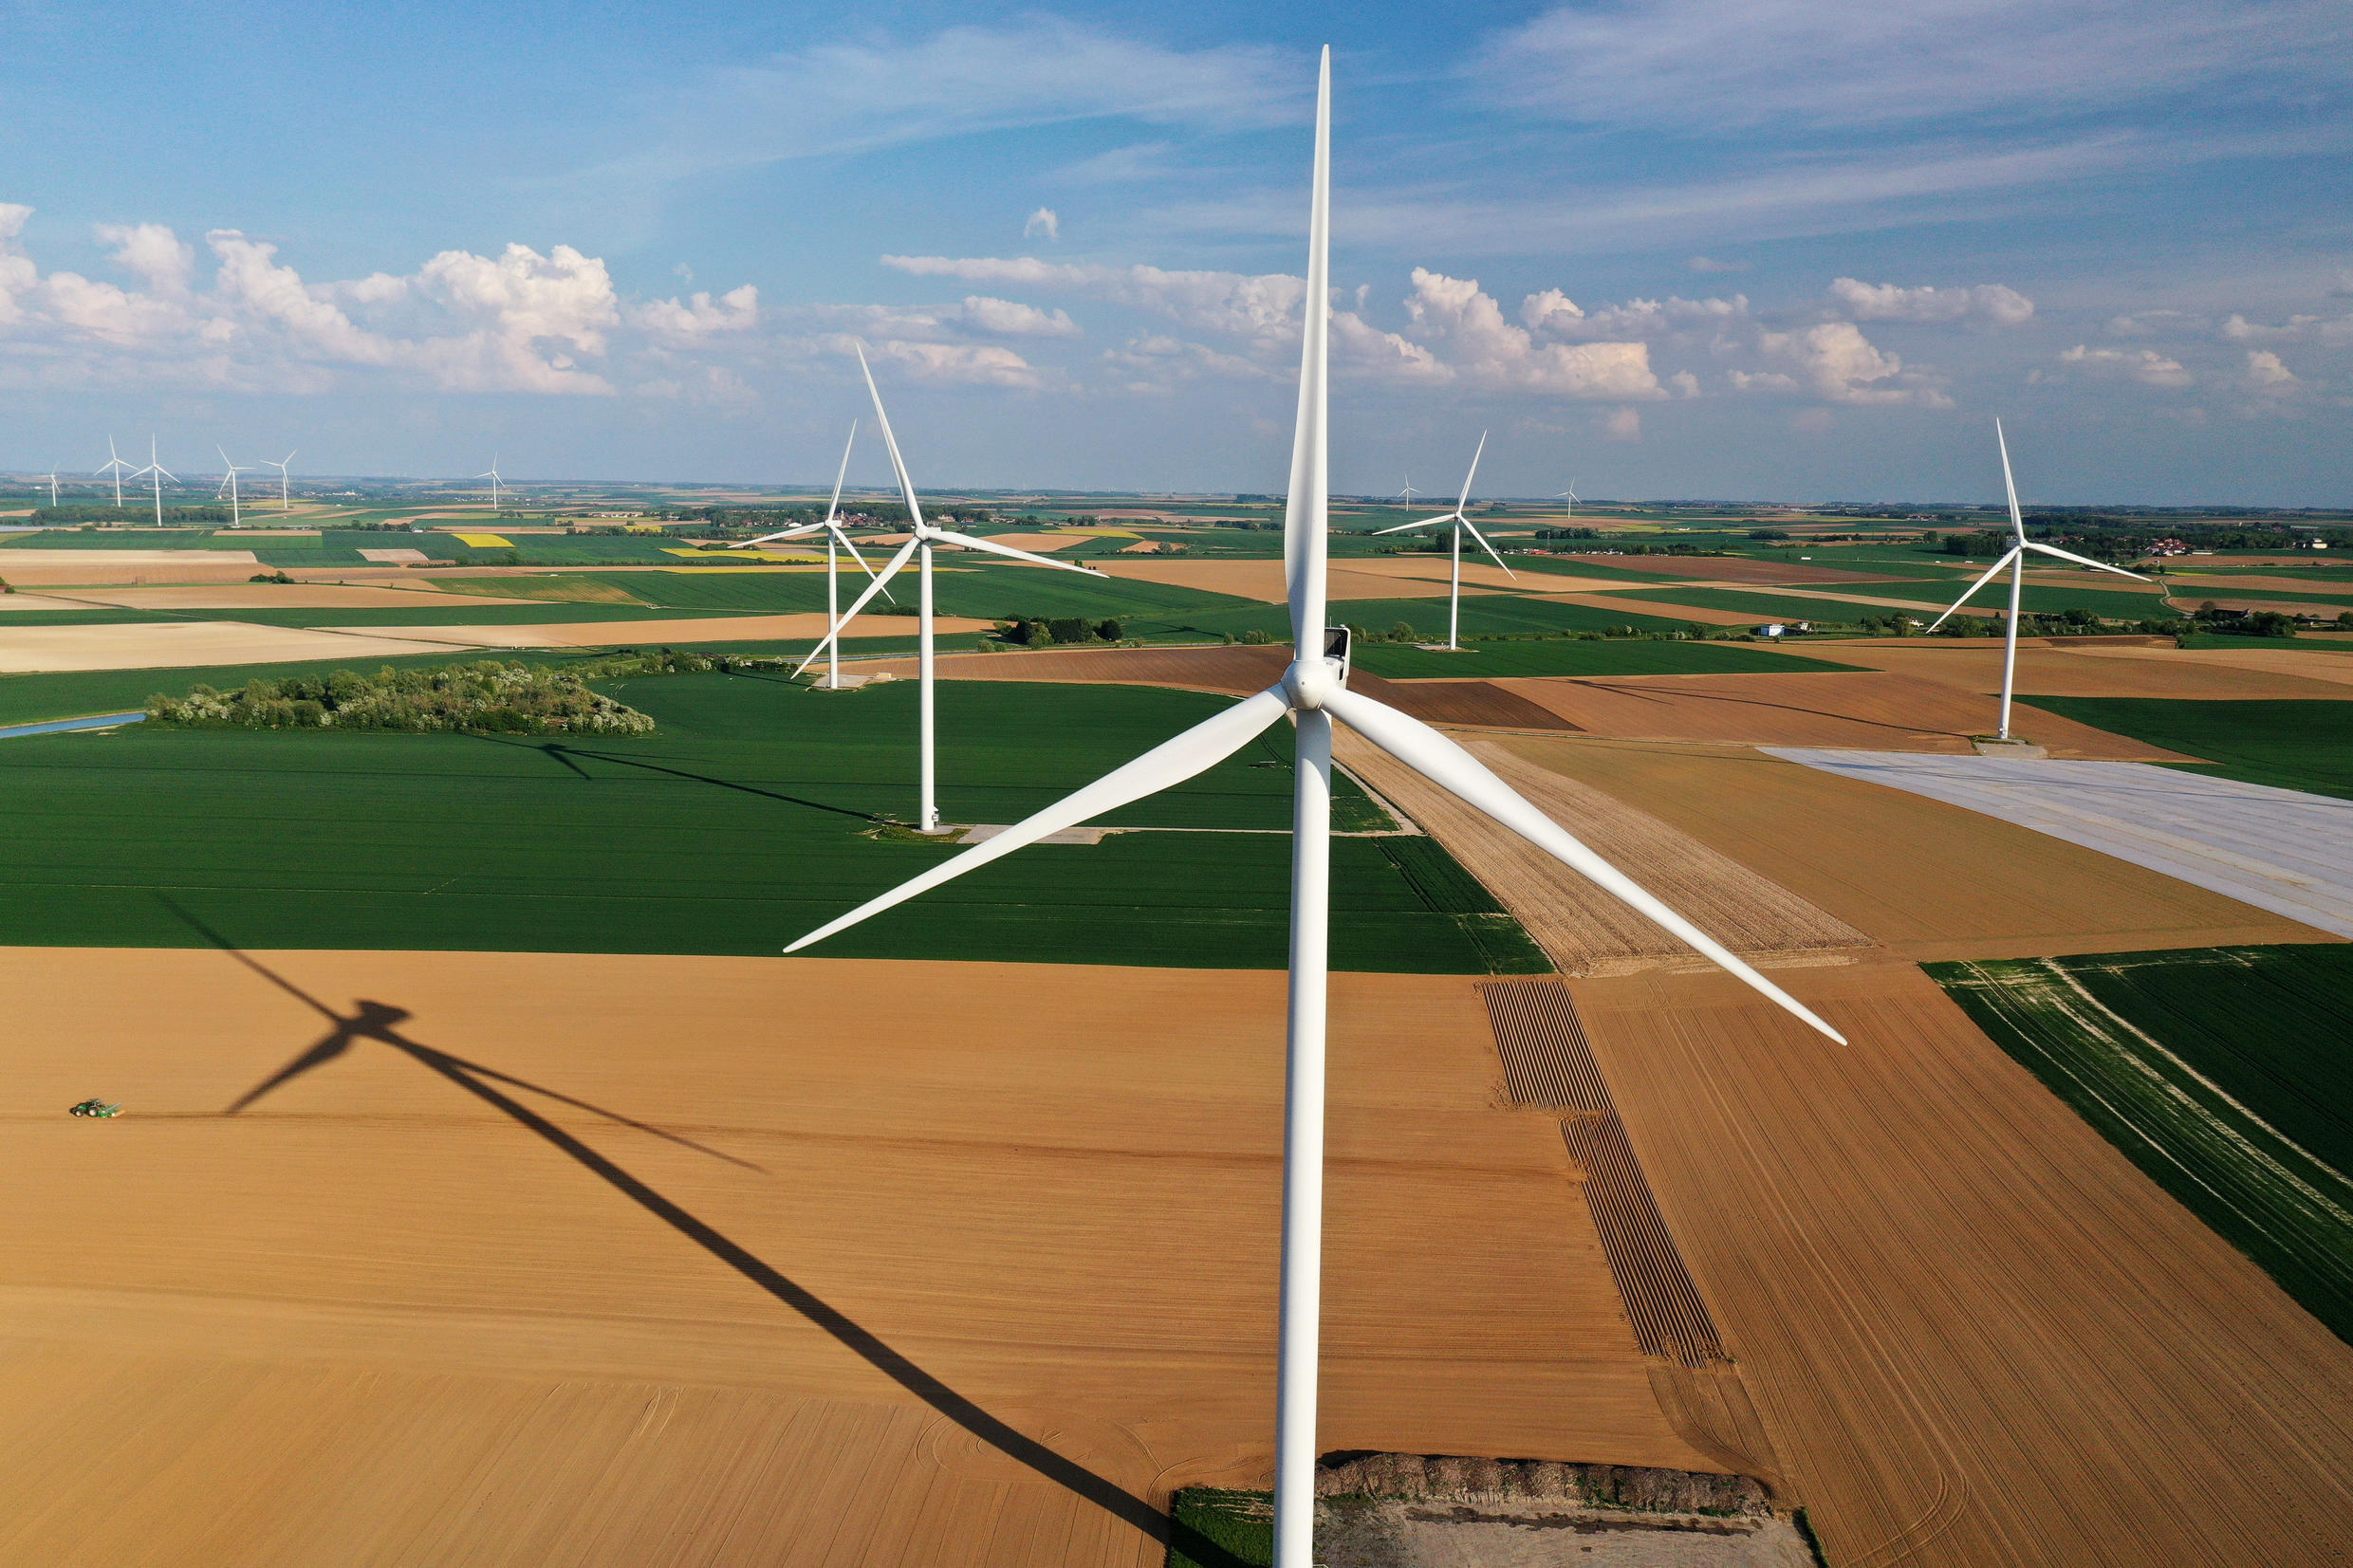 2020-04-27T180653Z_1477661145_RC26DG9NCDR7_RTRMADP_3_FRANCE-ENERGY